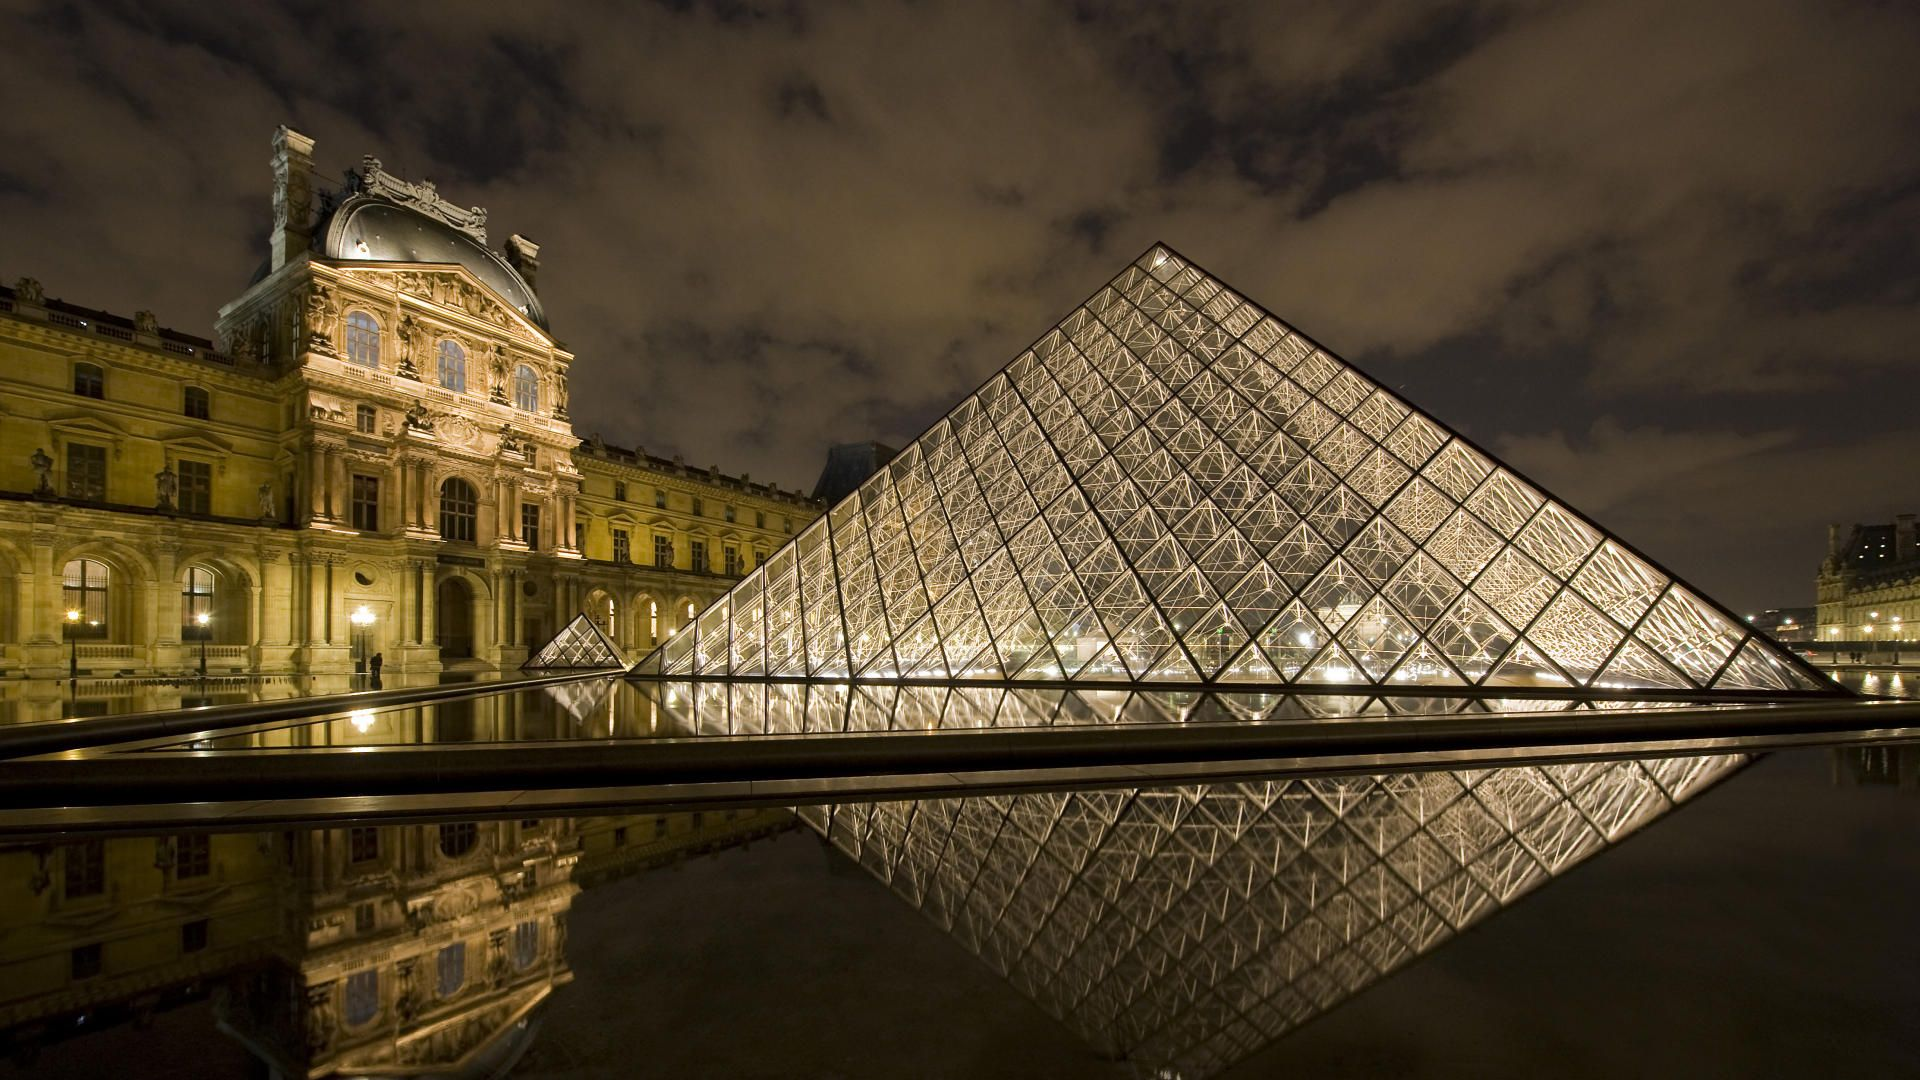 Buildings City Louvre Pyramid At Night Paris France picture 1920x1080